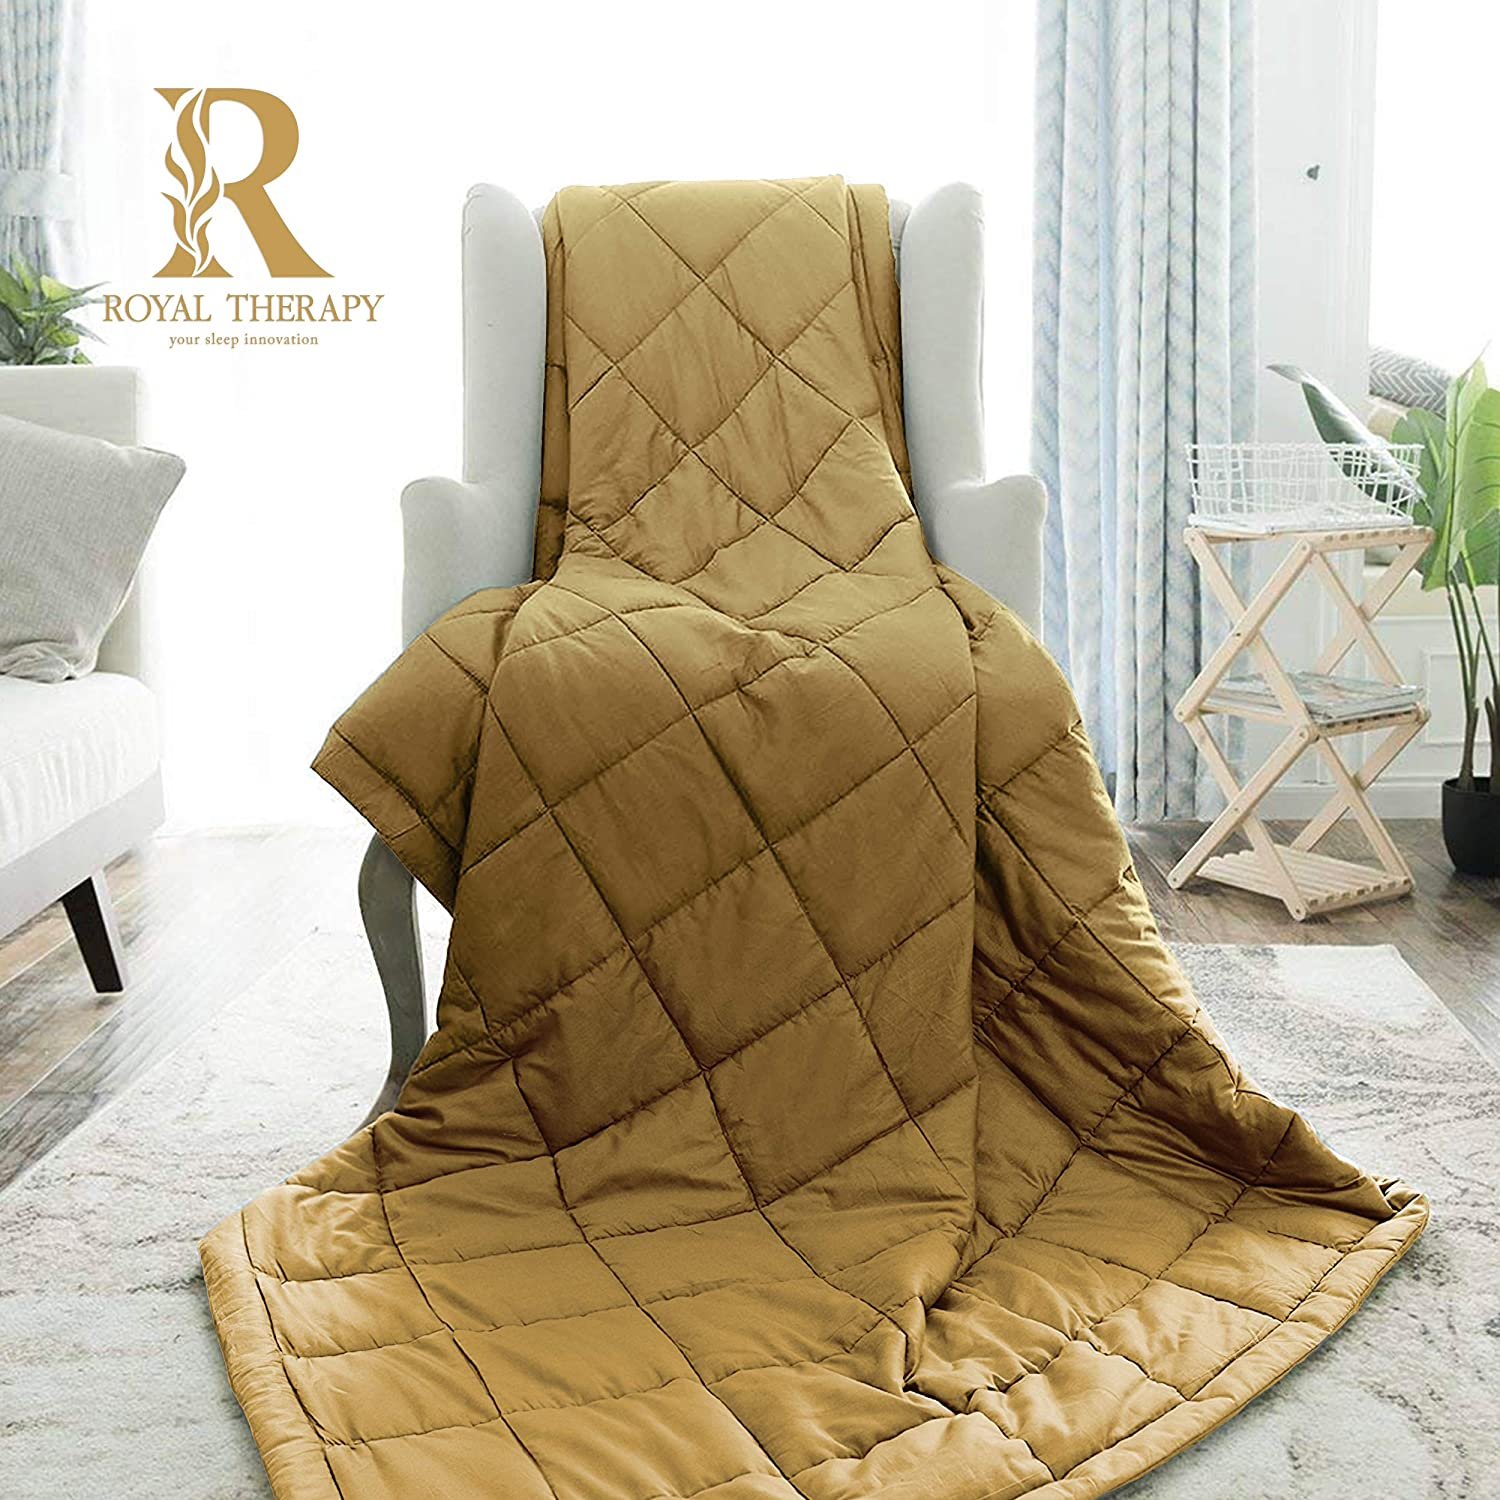 Royal NEW before selling Therapy Weighted Blanket - with Cotton 5 popular 100% Blankets Heavy